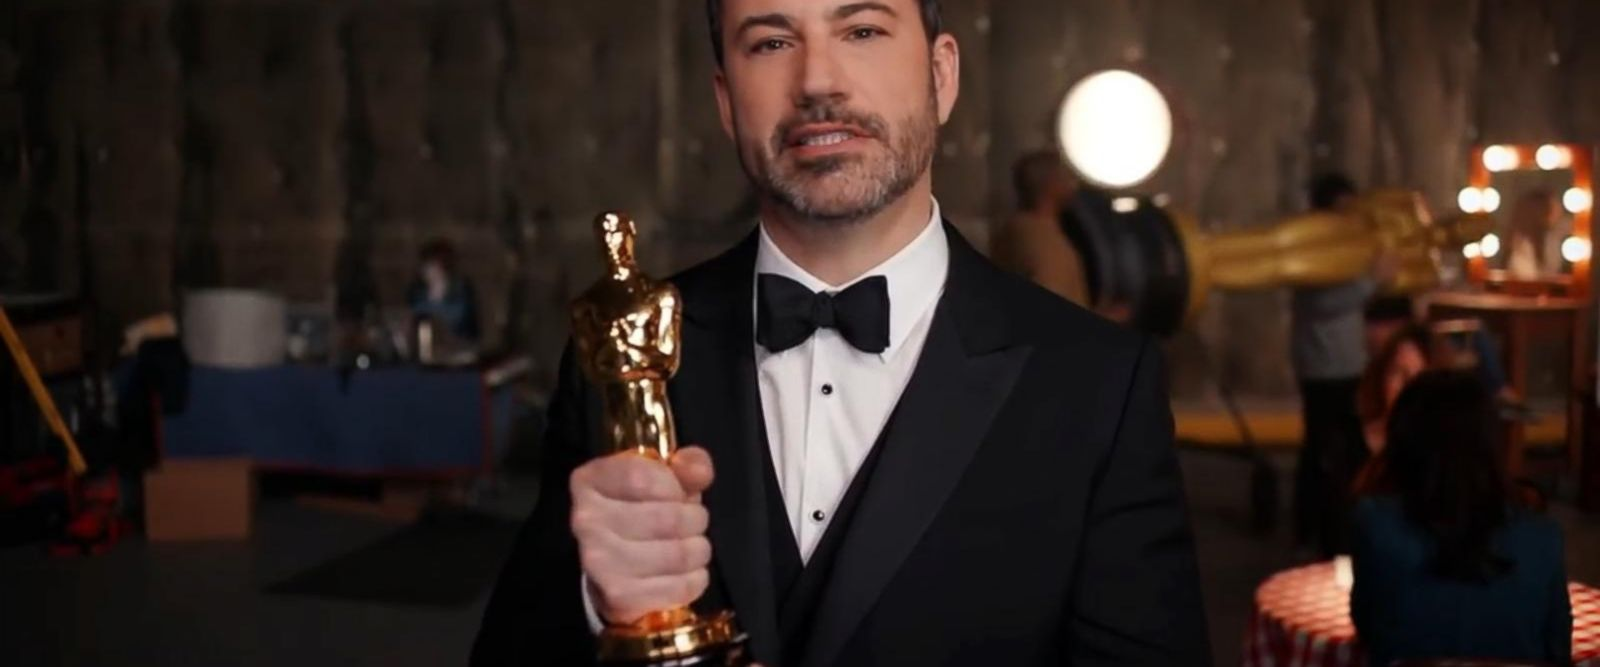 VIDEO: What to expect at the Oscars